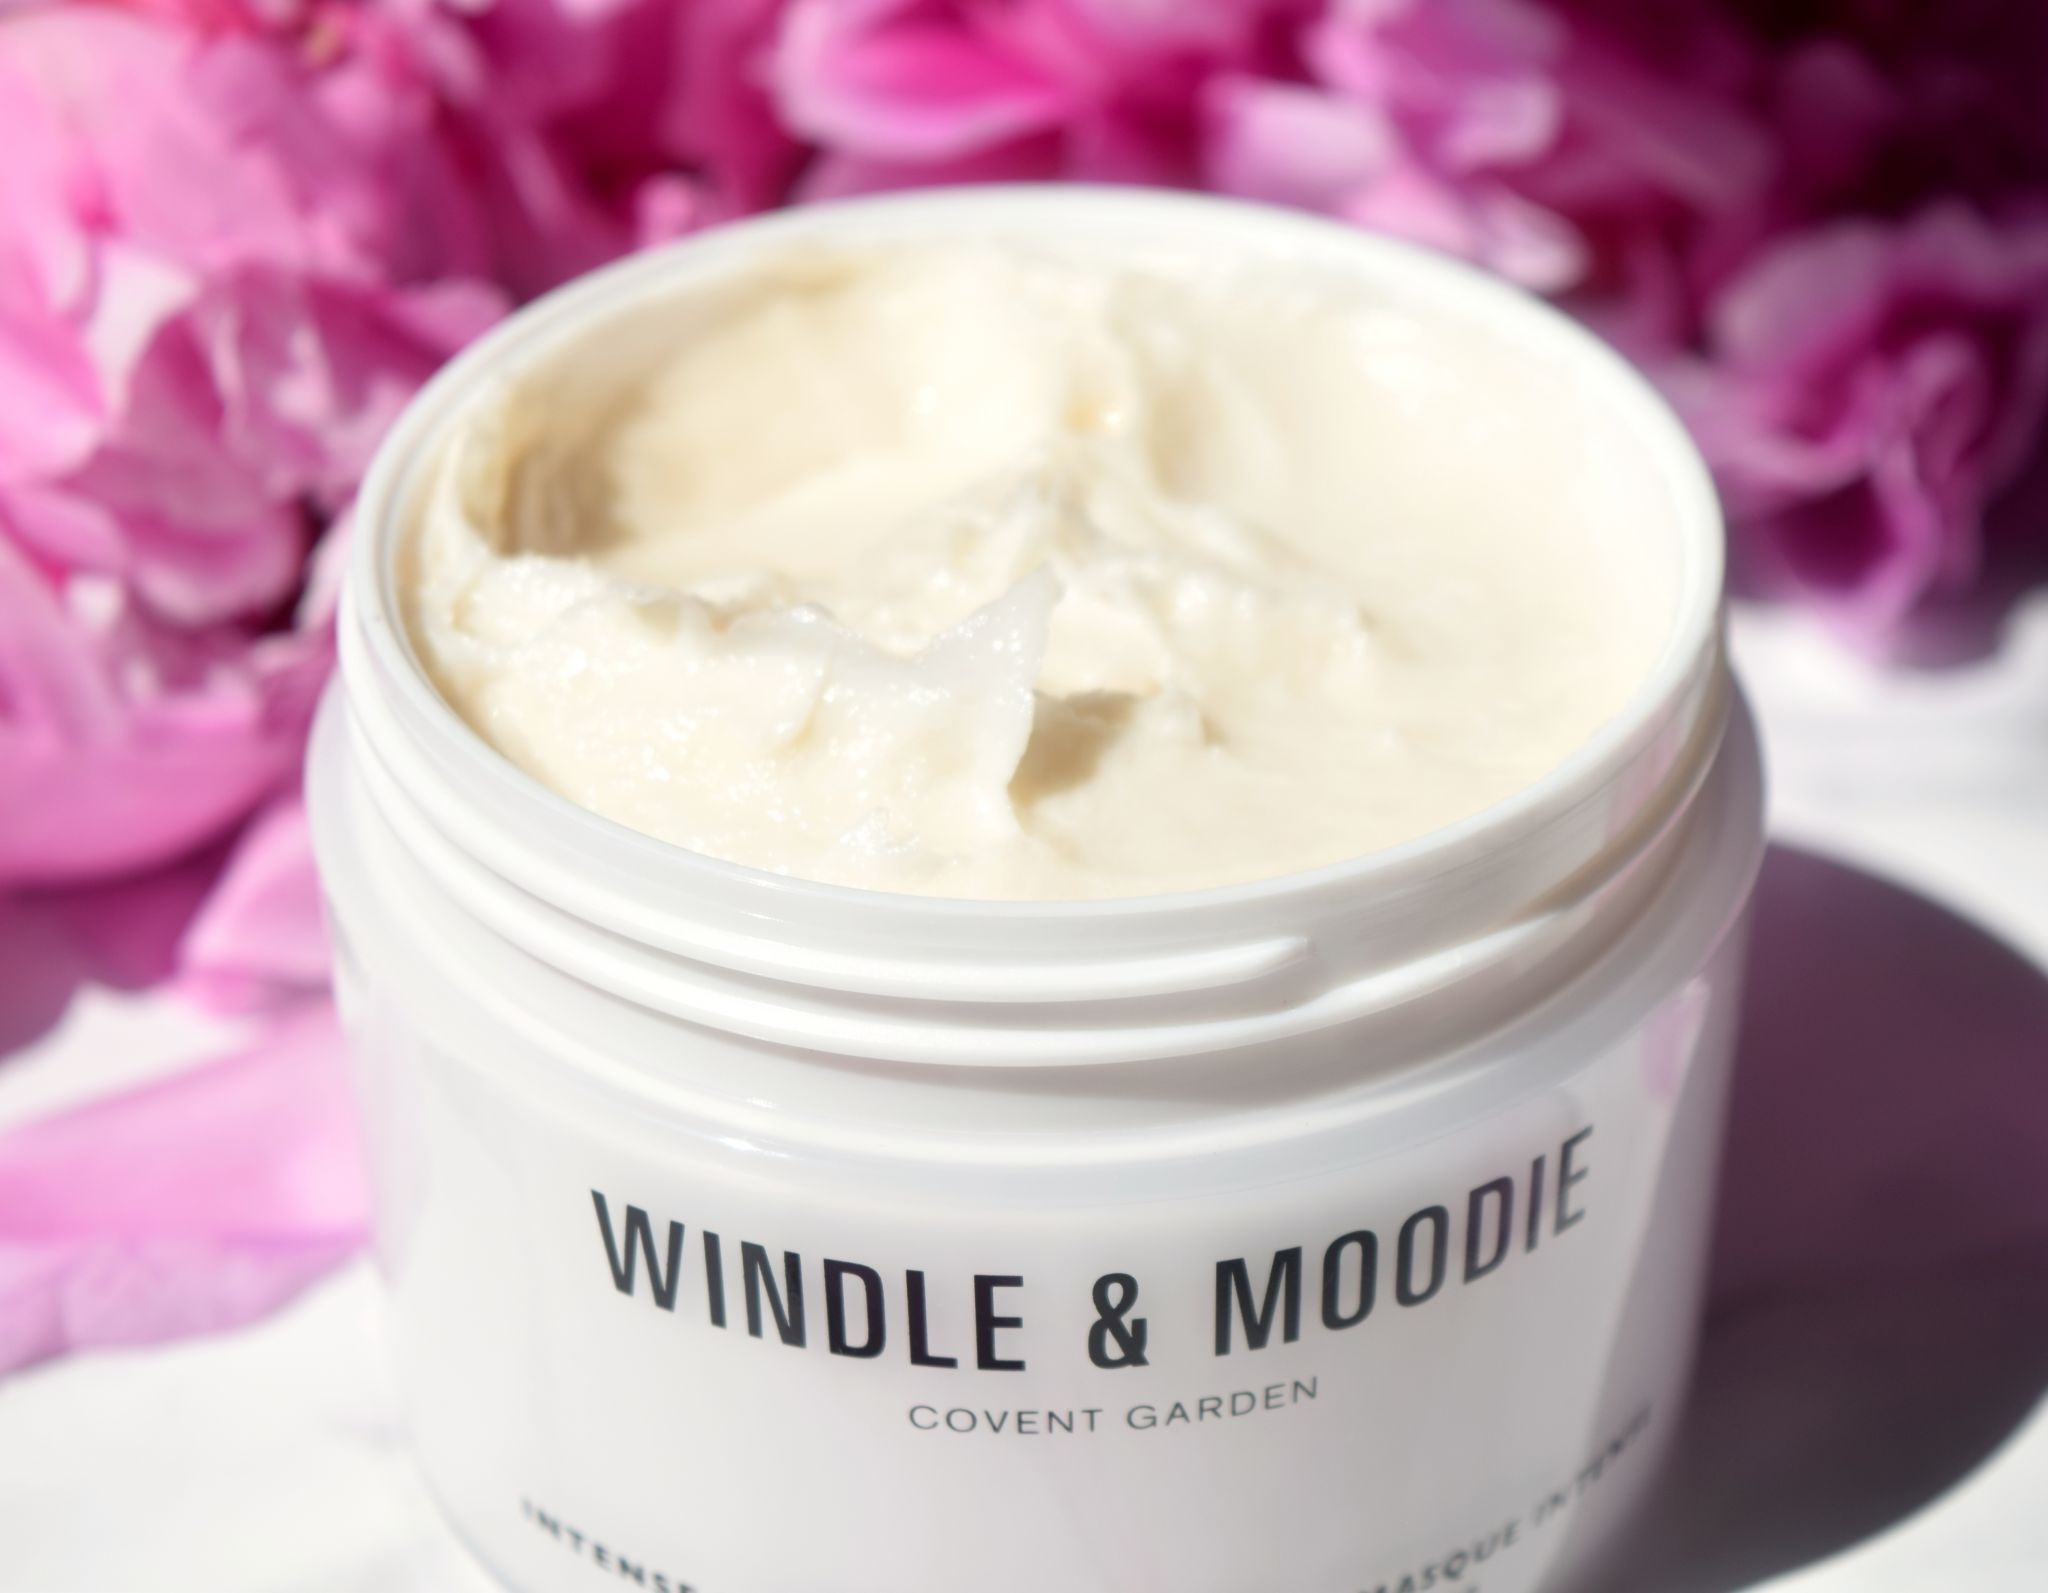 Windle & Moodie Intense Treatment Masque 3